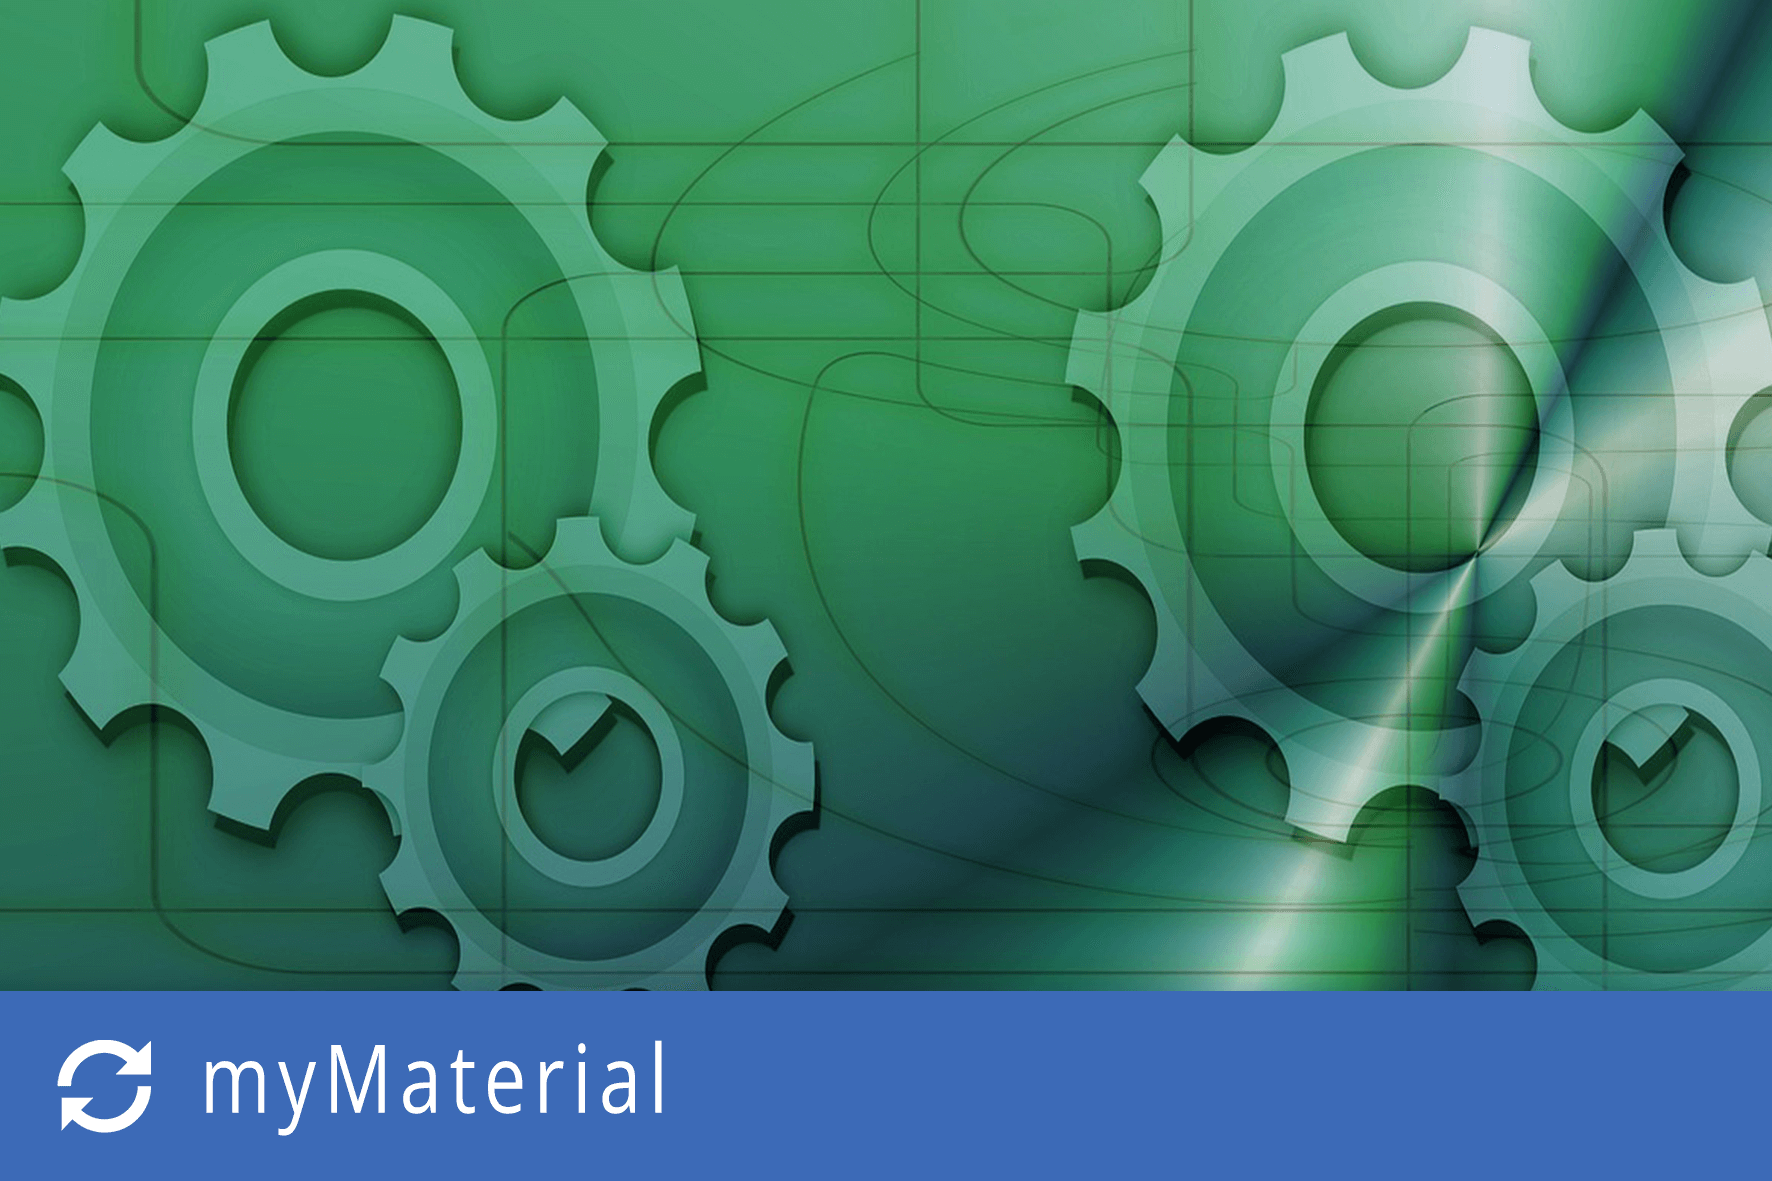 myMaterial banner